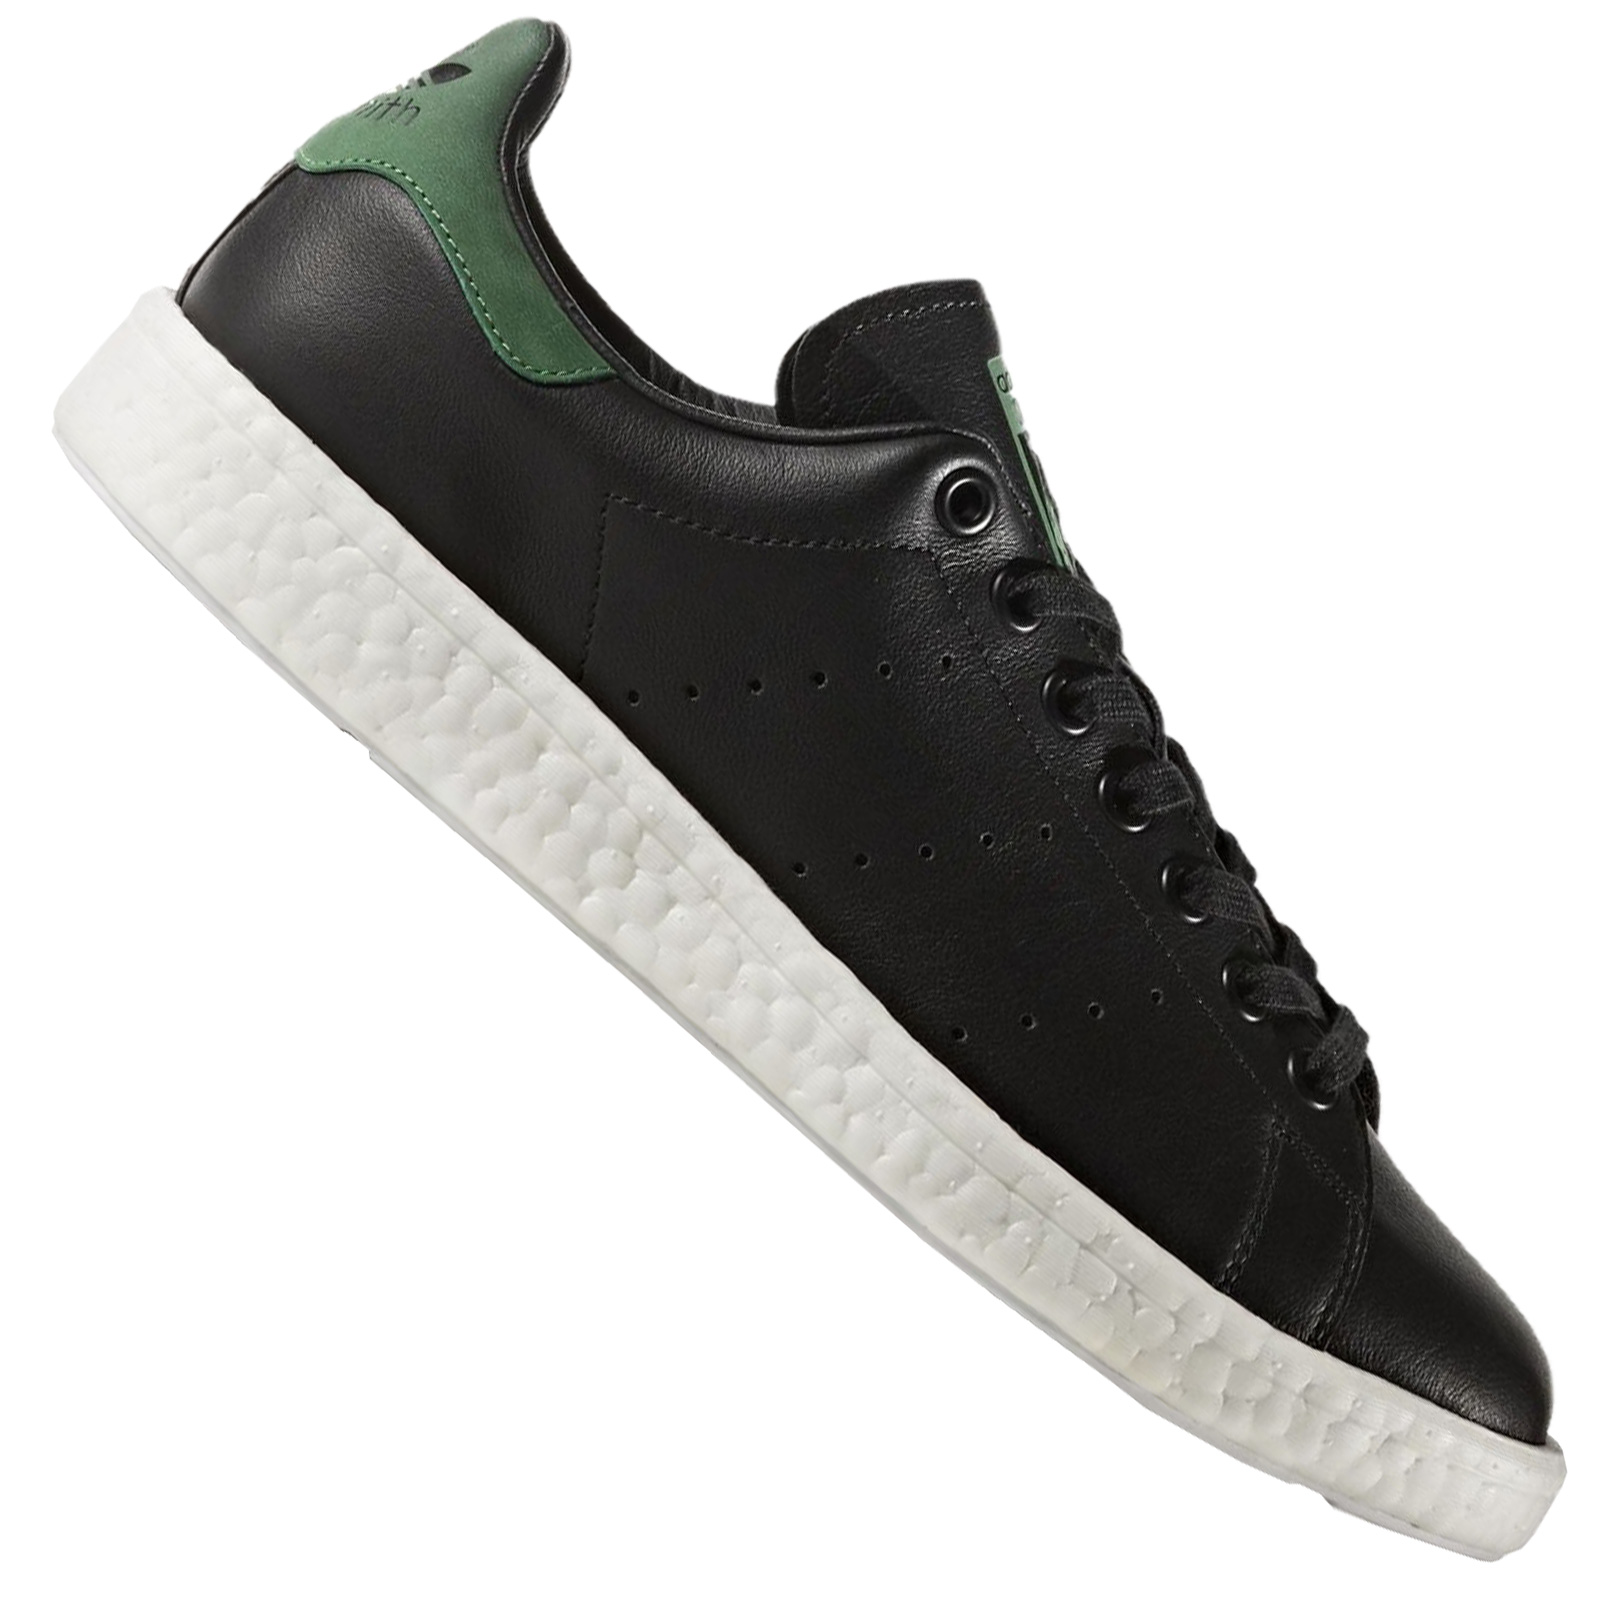 separation shoes 6e5f0 86b6e Details about Adidas Originals Stan Smith Boost Trainers Shoes BB0009 Black  Green